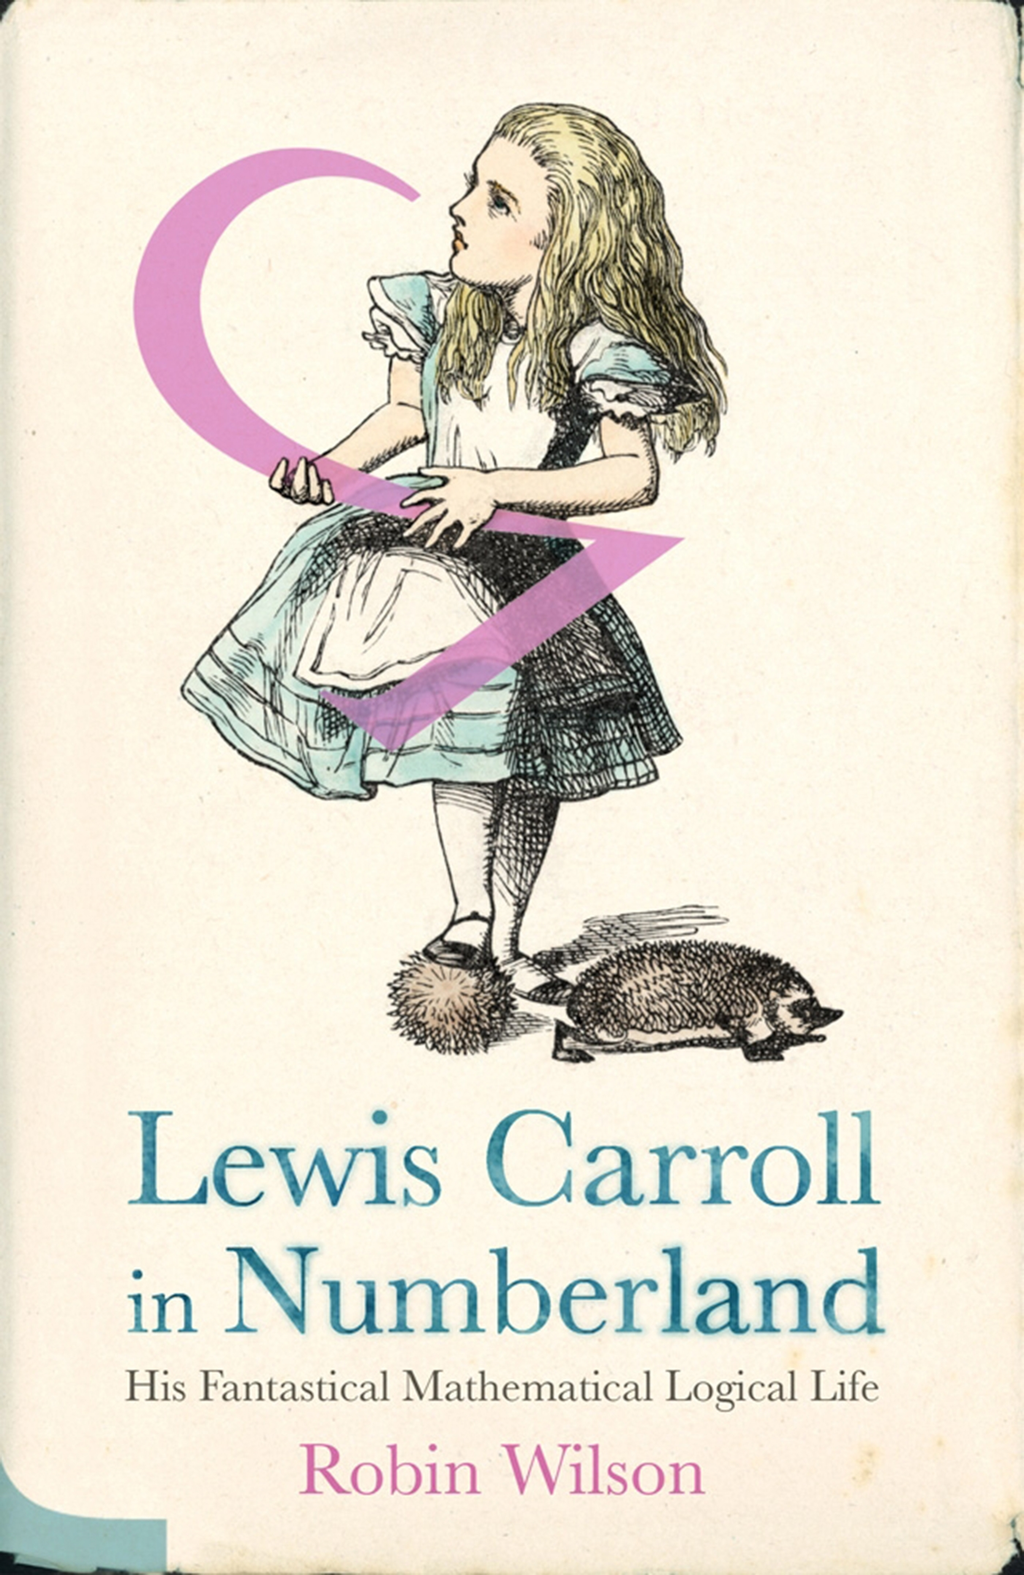 Lewis Carroll in Numberland His Fantastical Mathematical Logical Life